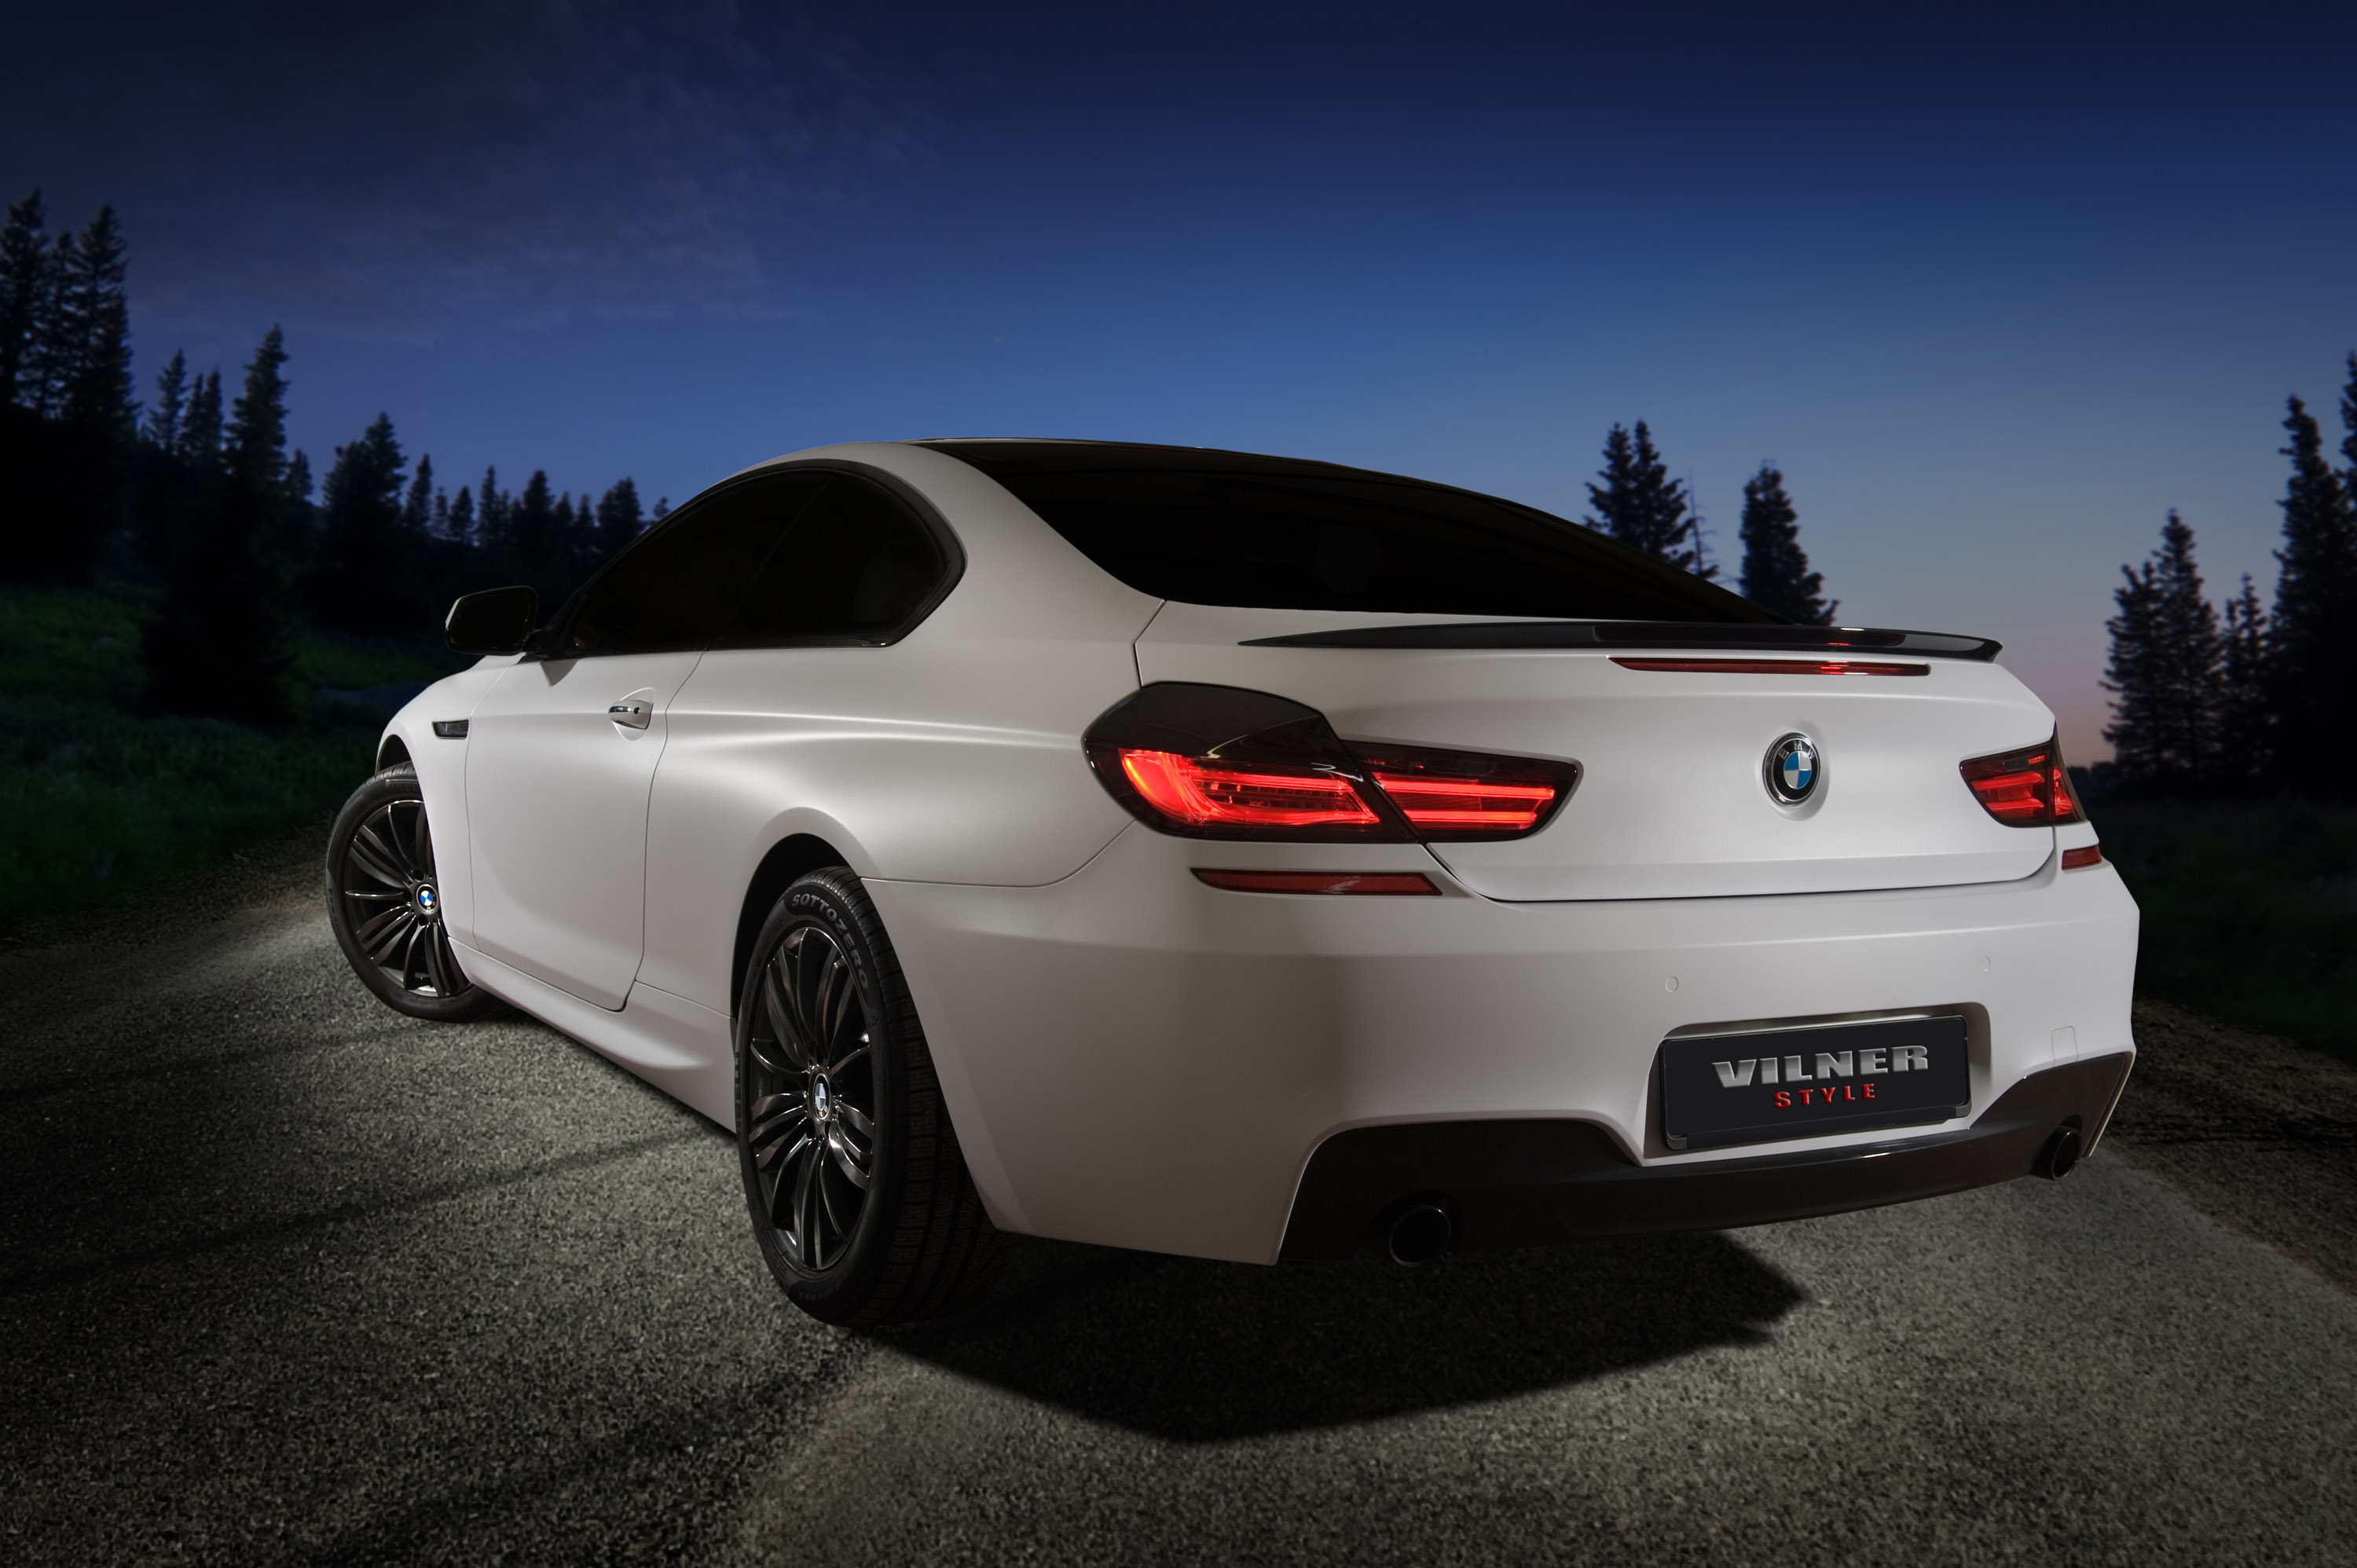 Vilner Bmw 6 Series M F12 04